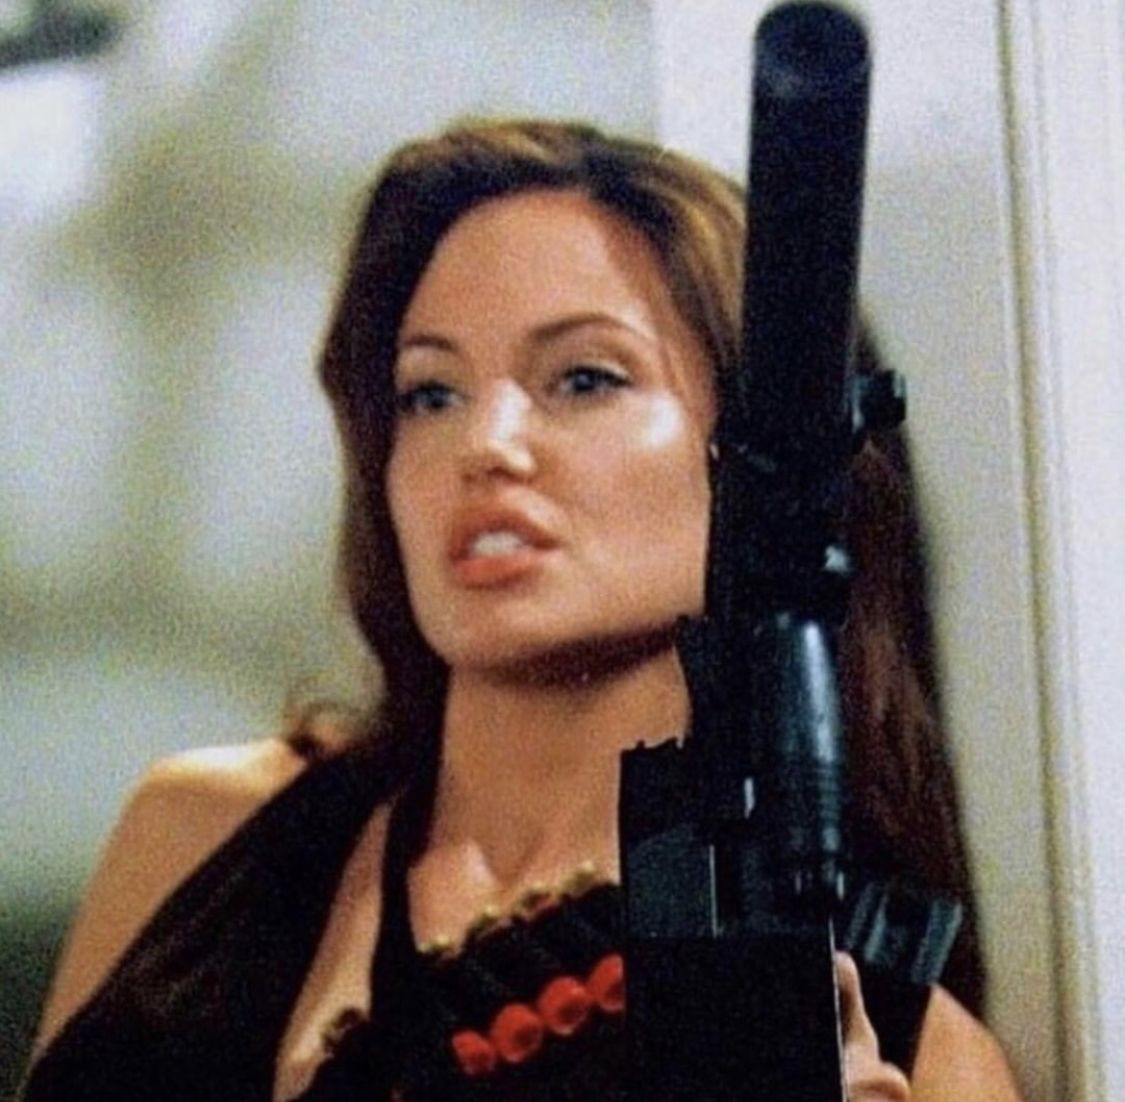 Angelina Jolie Mr And Mrs Smith Interview Pin By Heidi H On My Brain In 2020 Angelina Jolie Bad Girl Aesthetic Angelina Jolie 90s